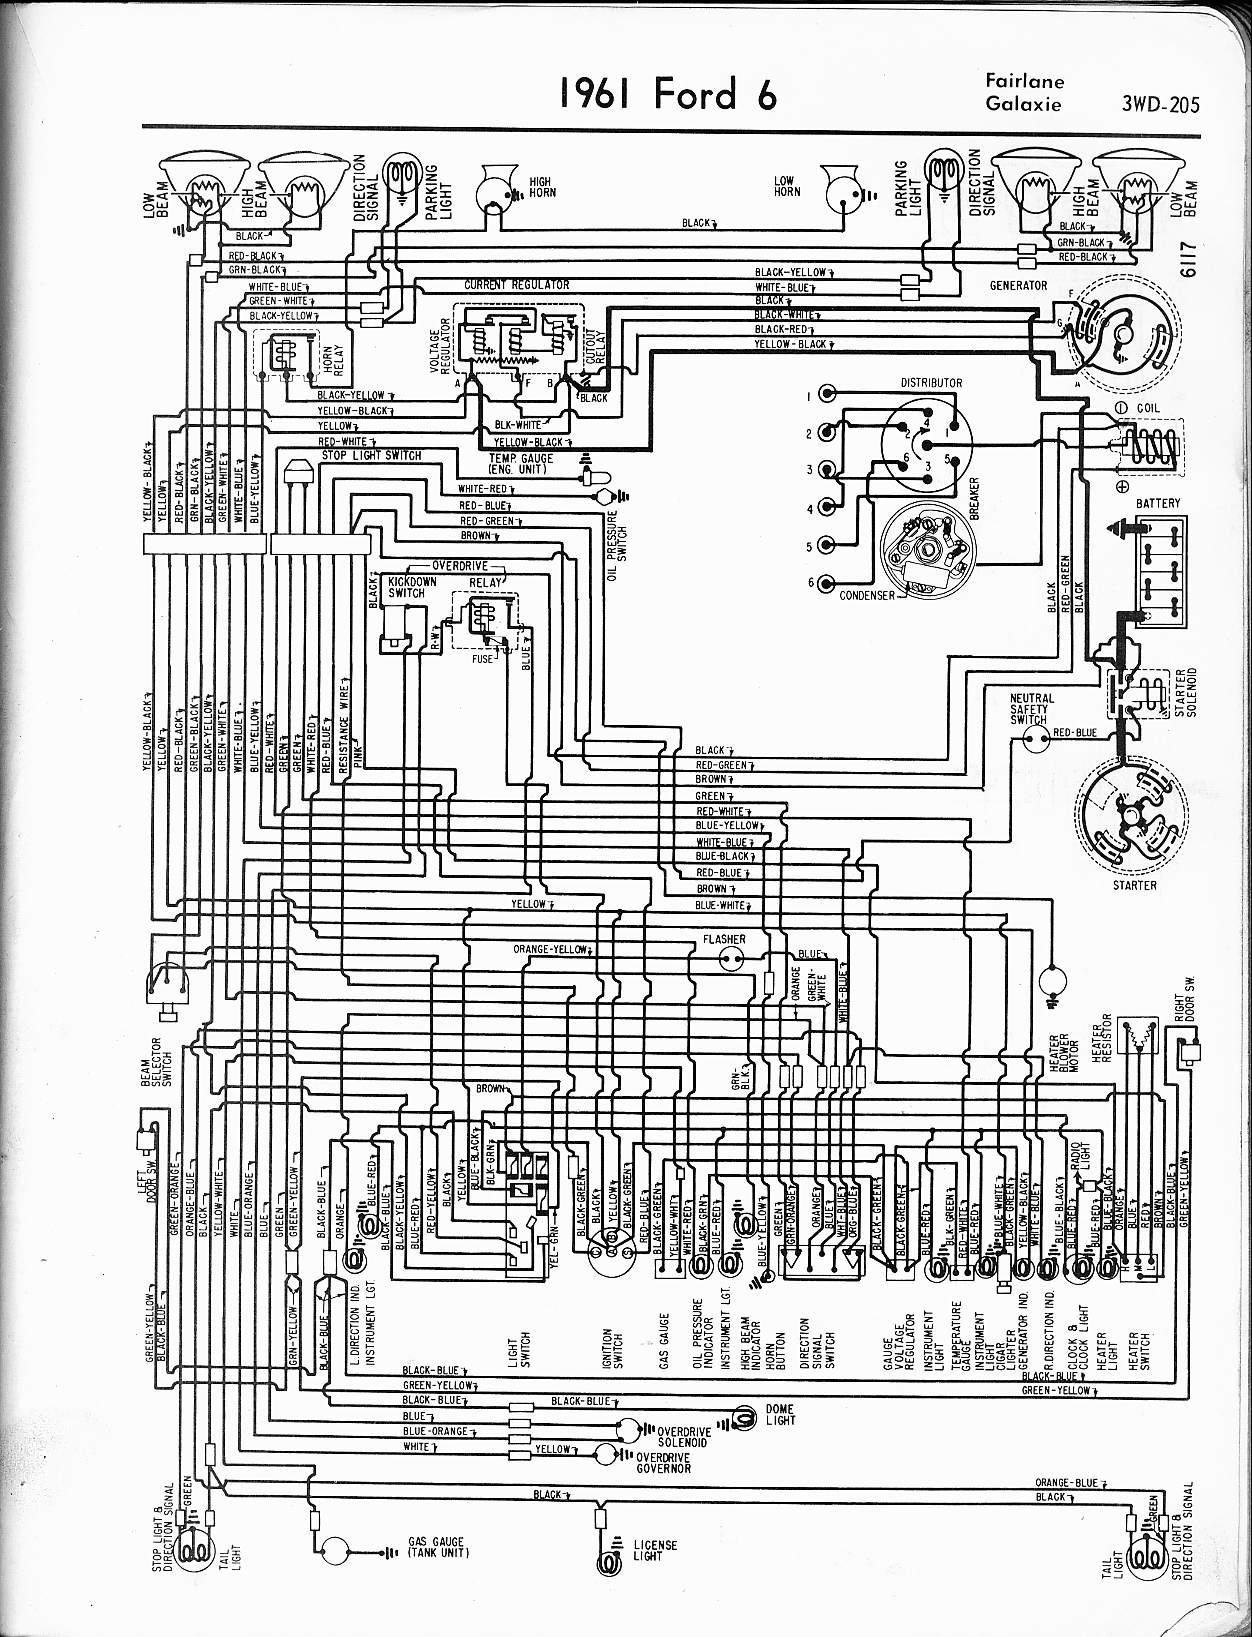 hight resolution of 1965 ford f100 ignition switch wiring diagram detailed schematics 1973 ford truck wiring diagram 1972 ford